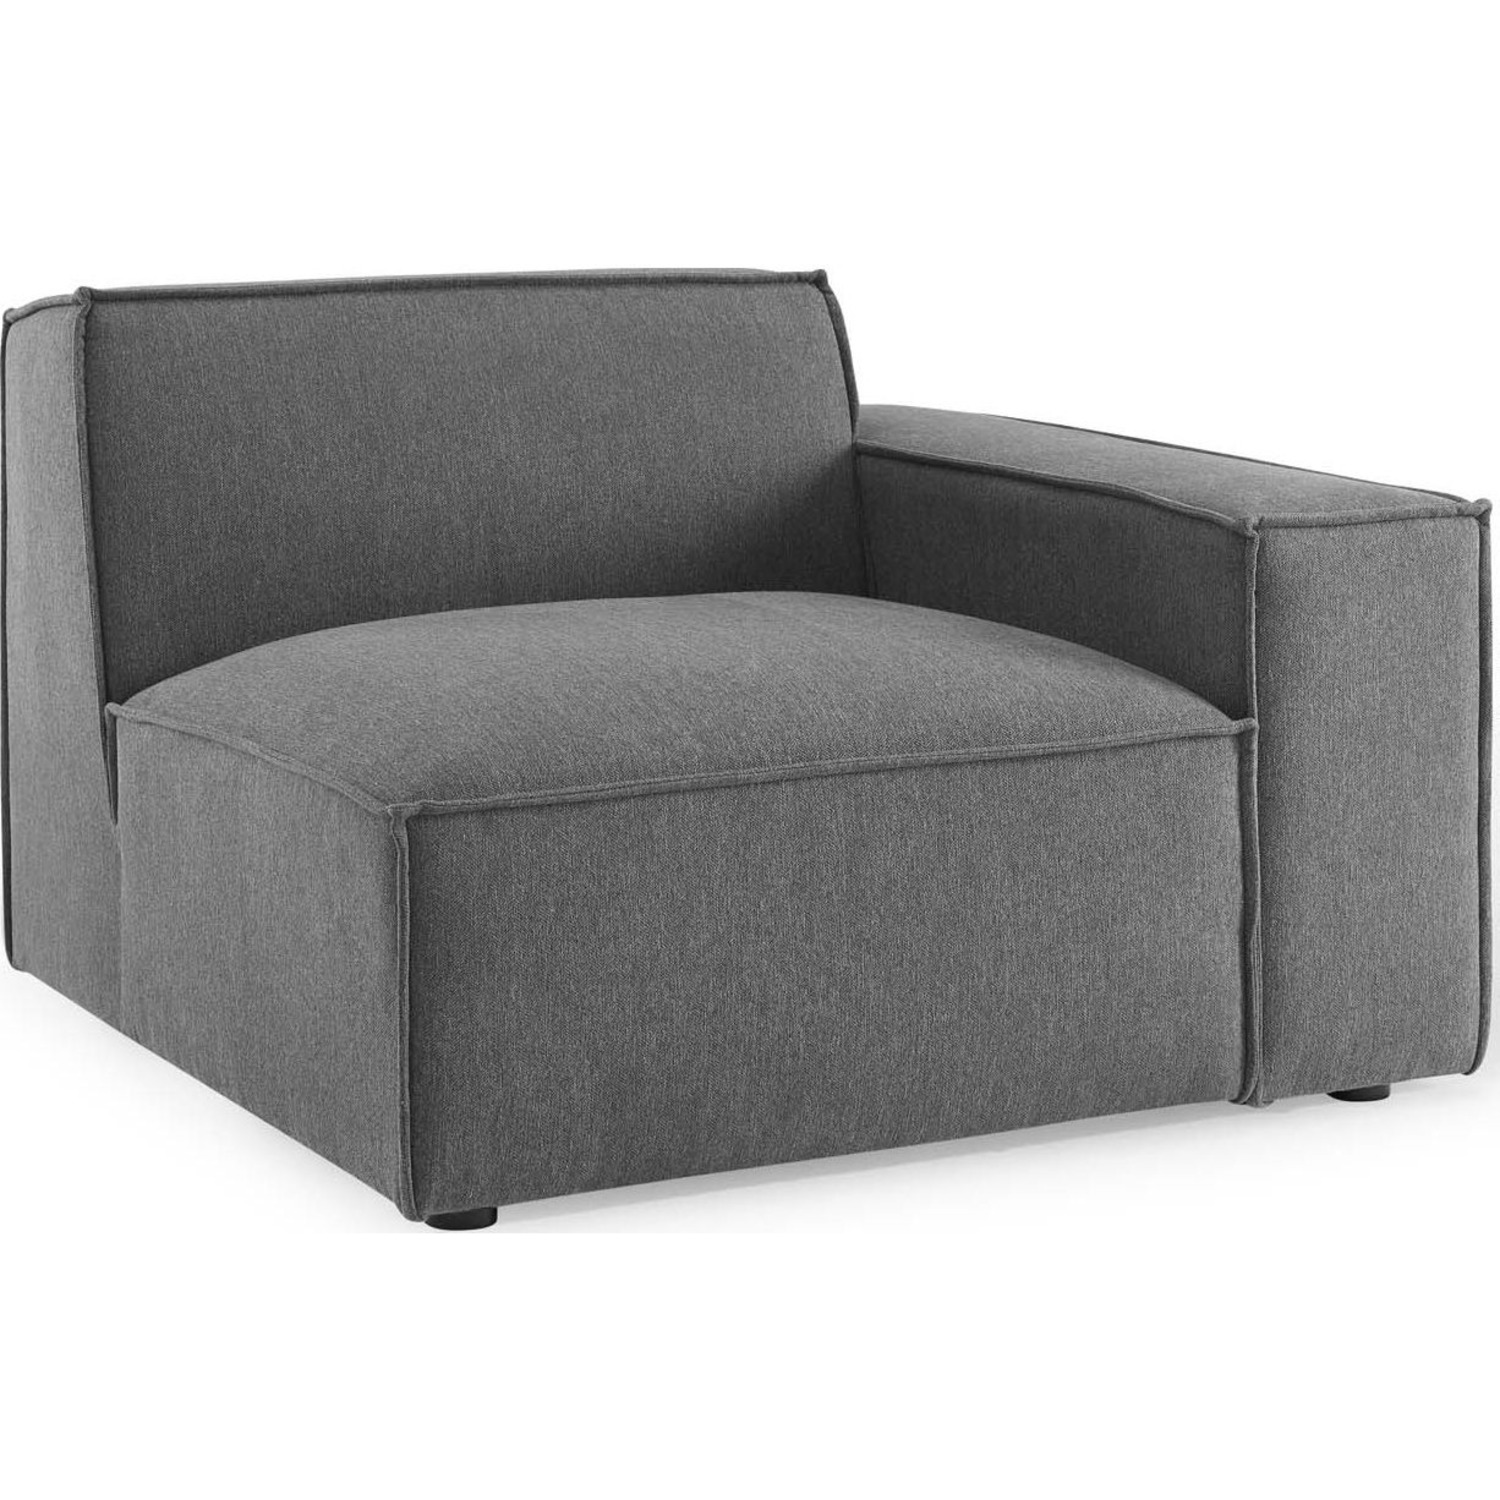 5-Piece Sectional Sofa In Charcoal Fabric - image-2